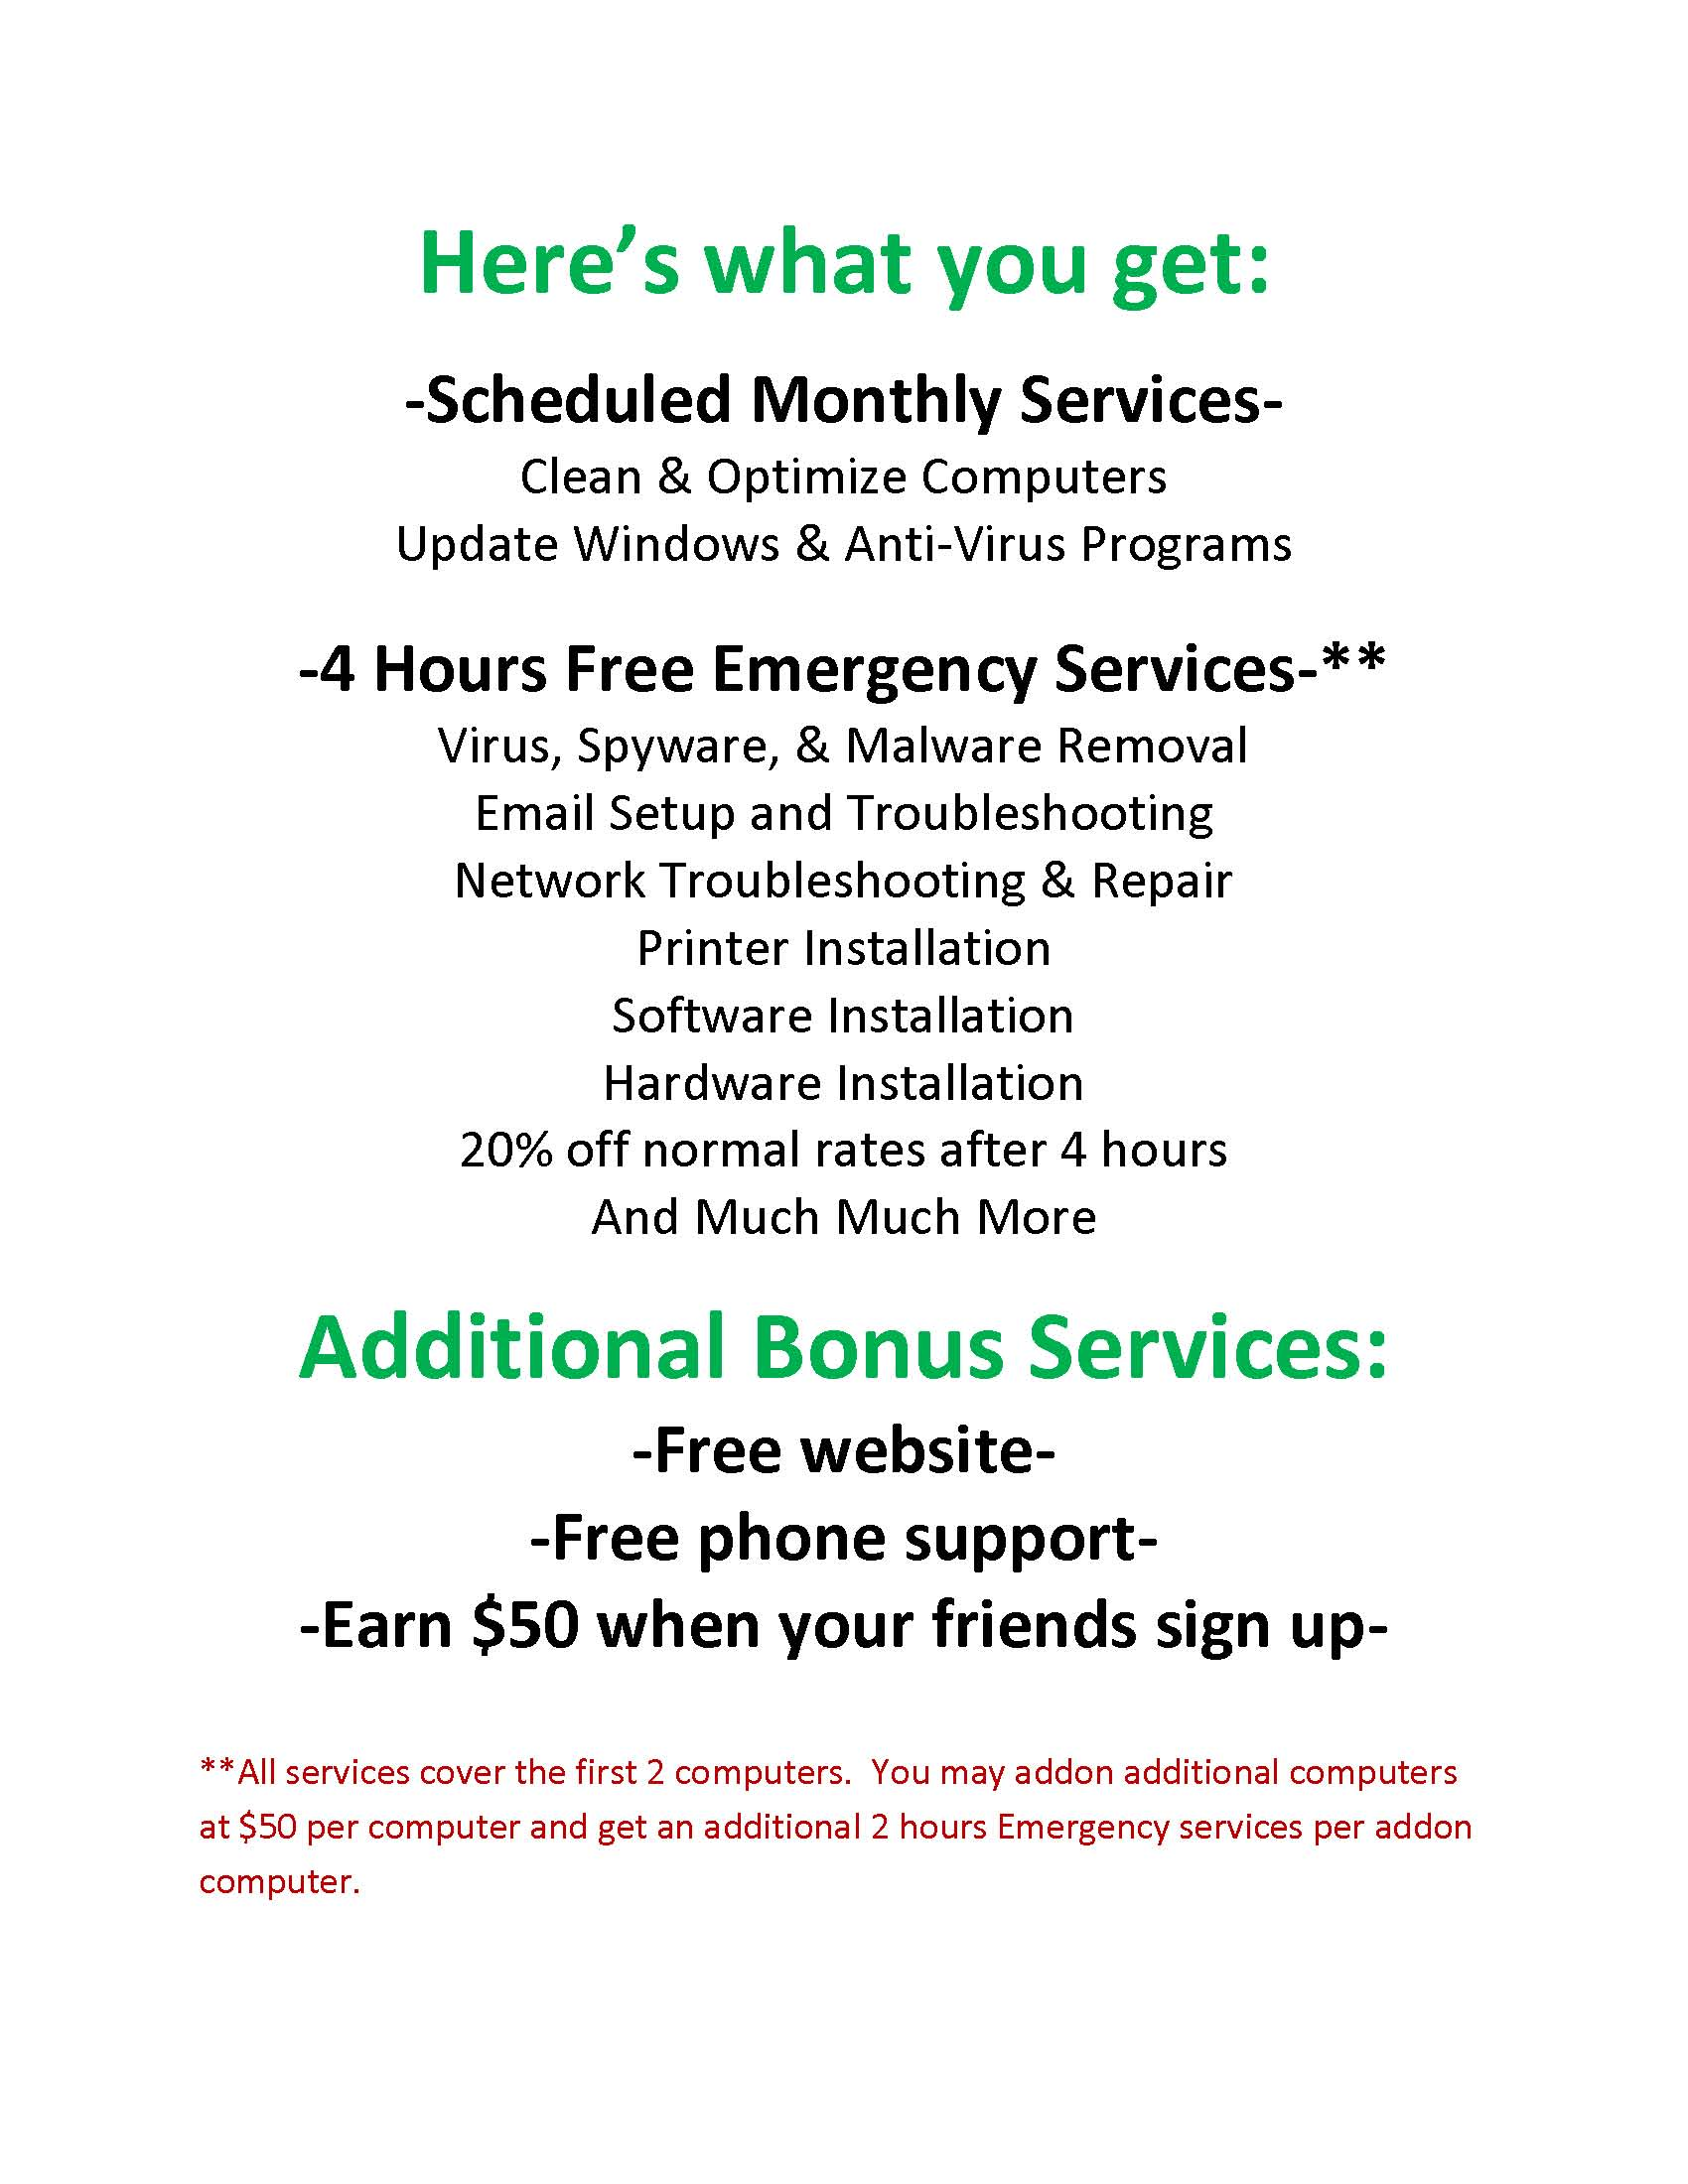 Monthly Service Plan by SimpleTechGuy